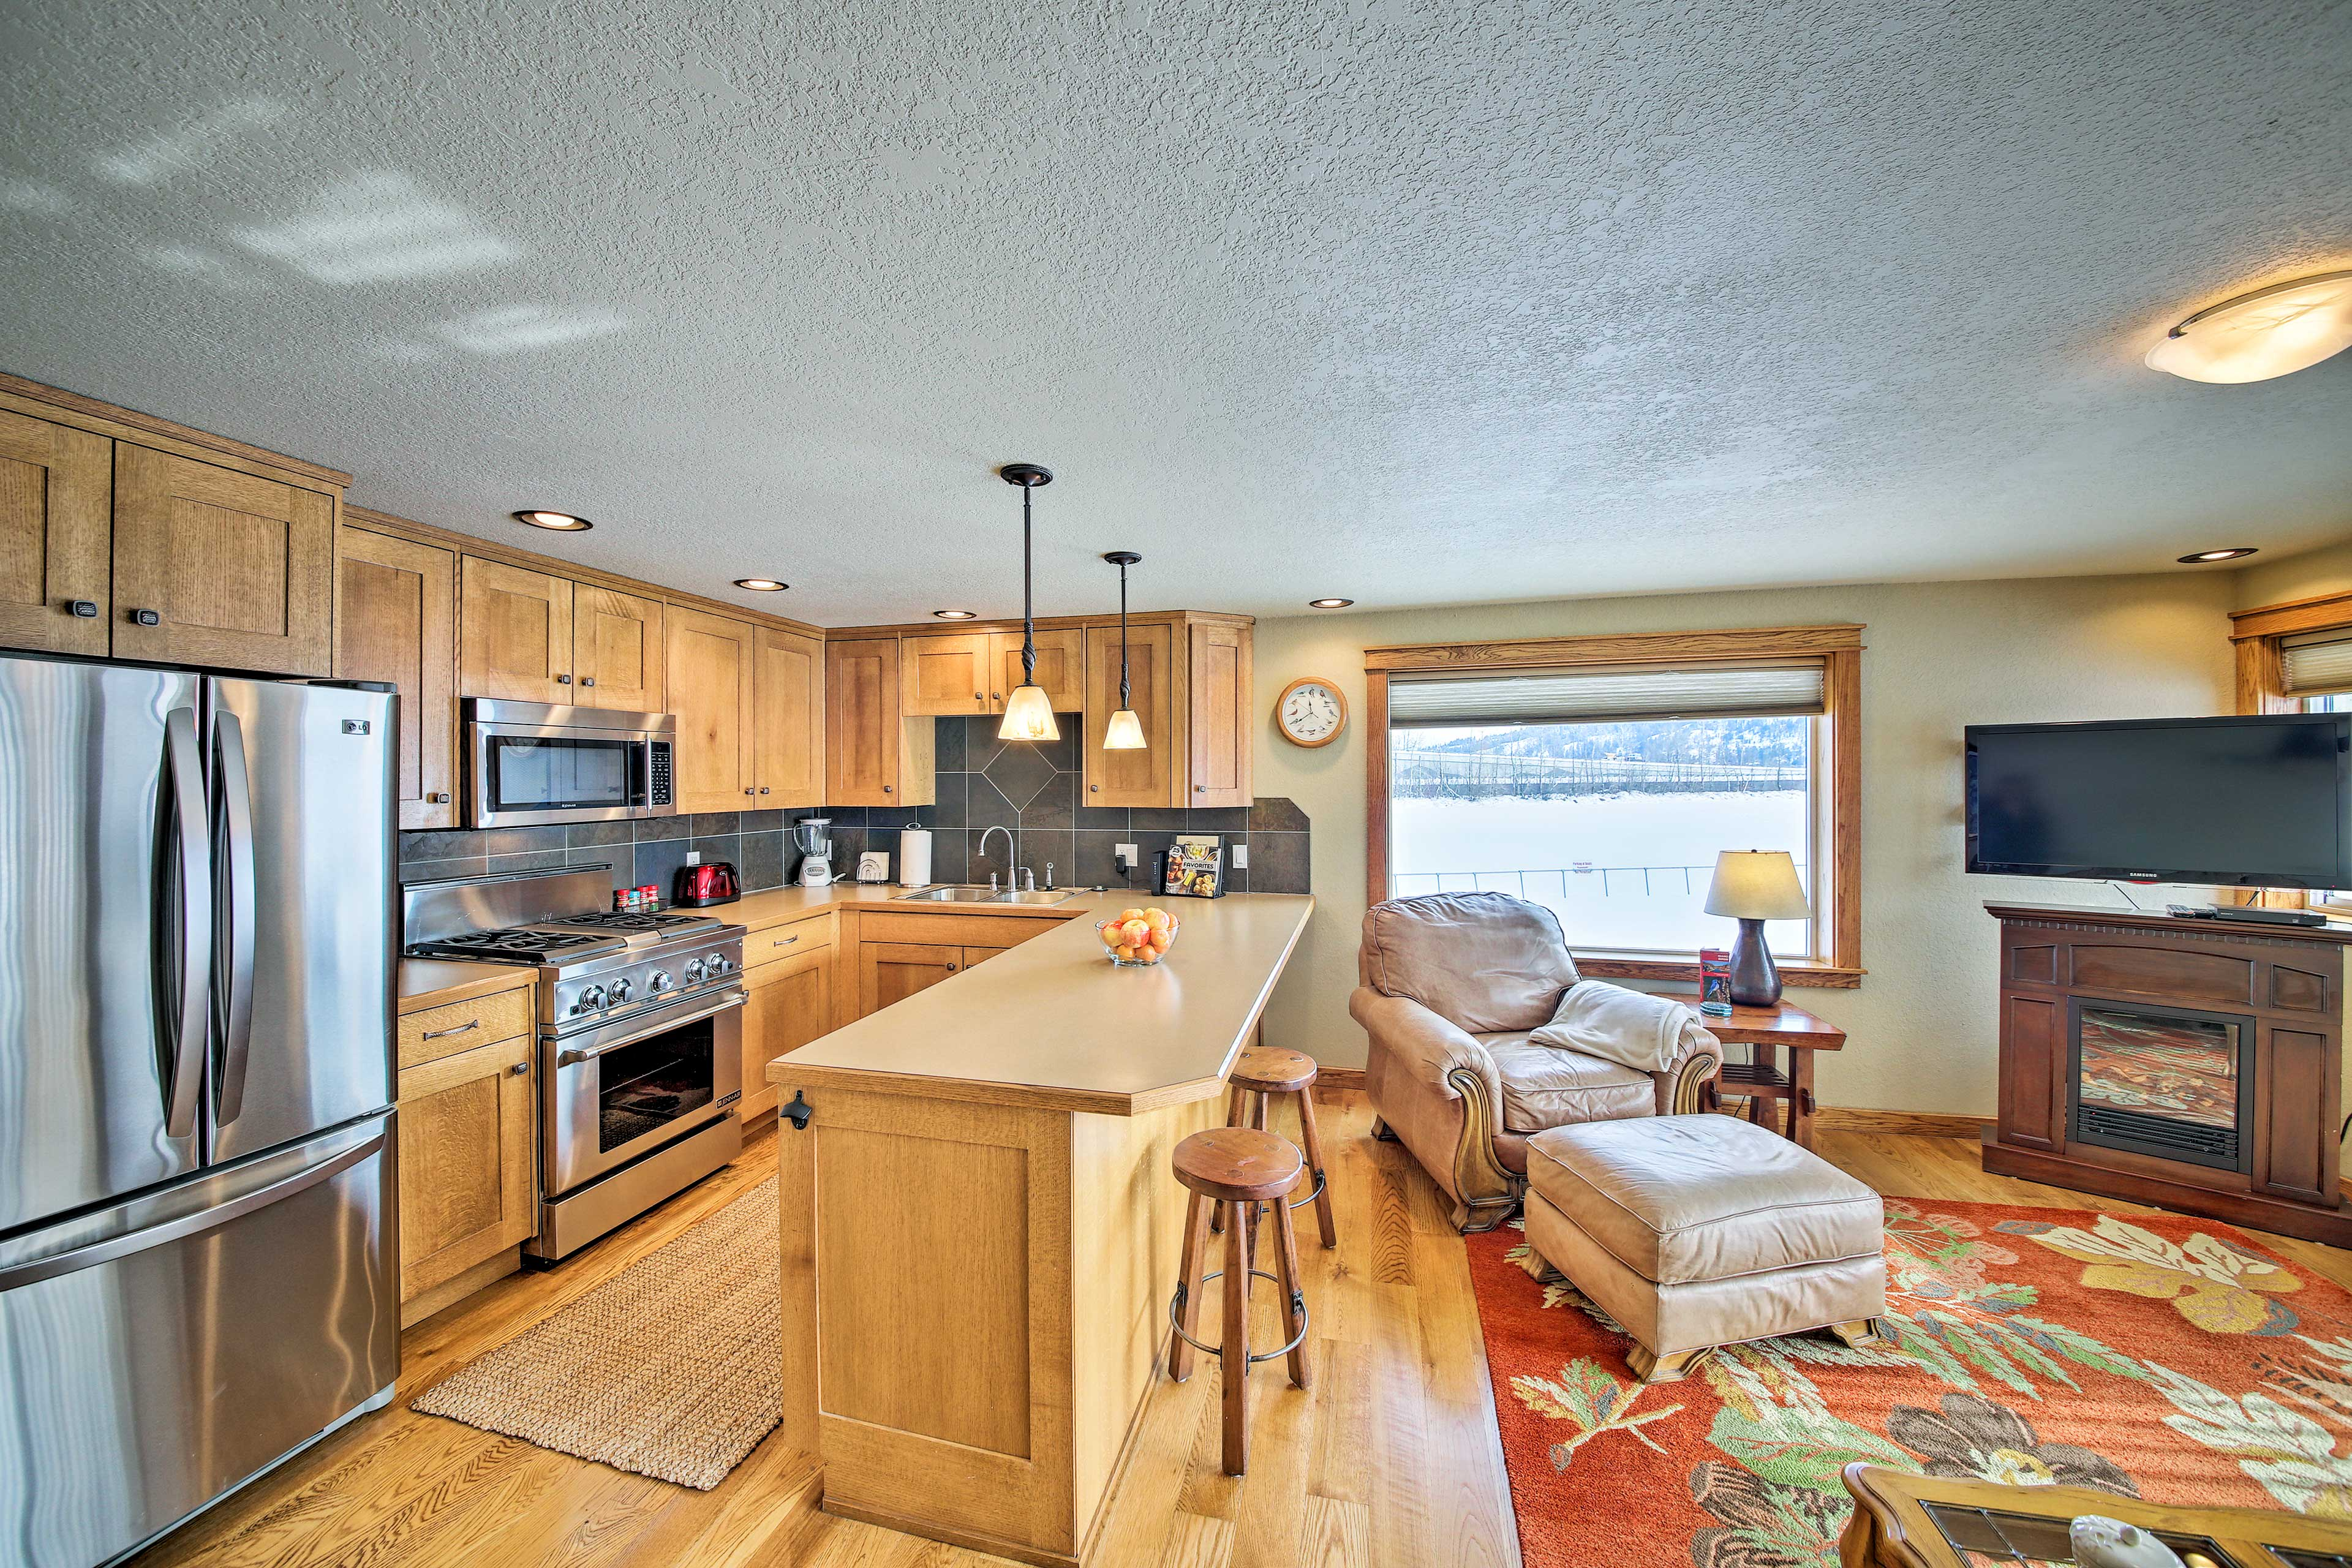 Relax in the living room or make a snack in the fully equipped kitchen.